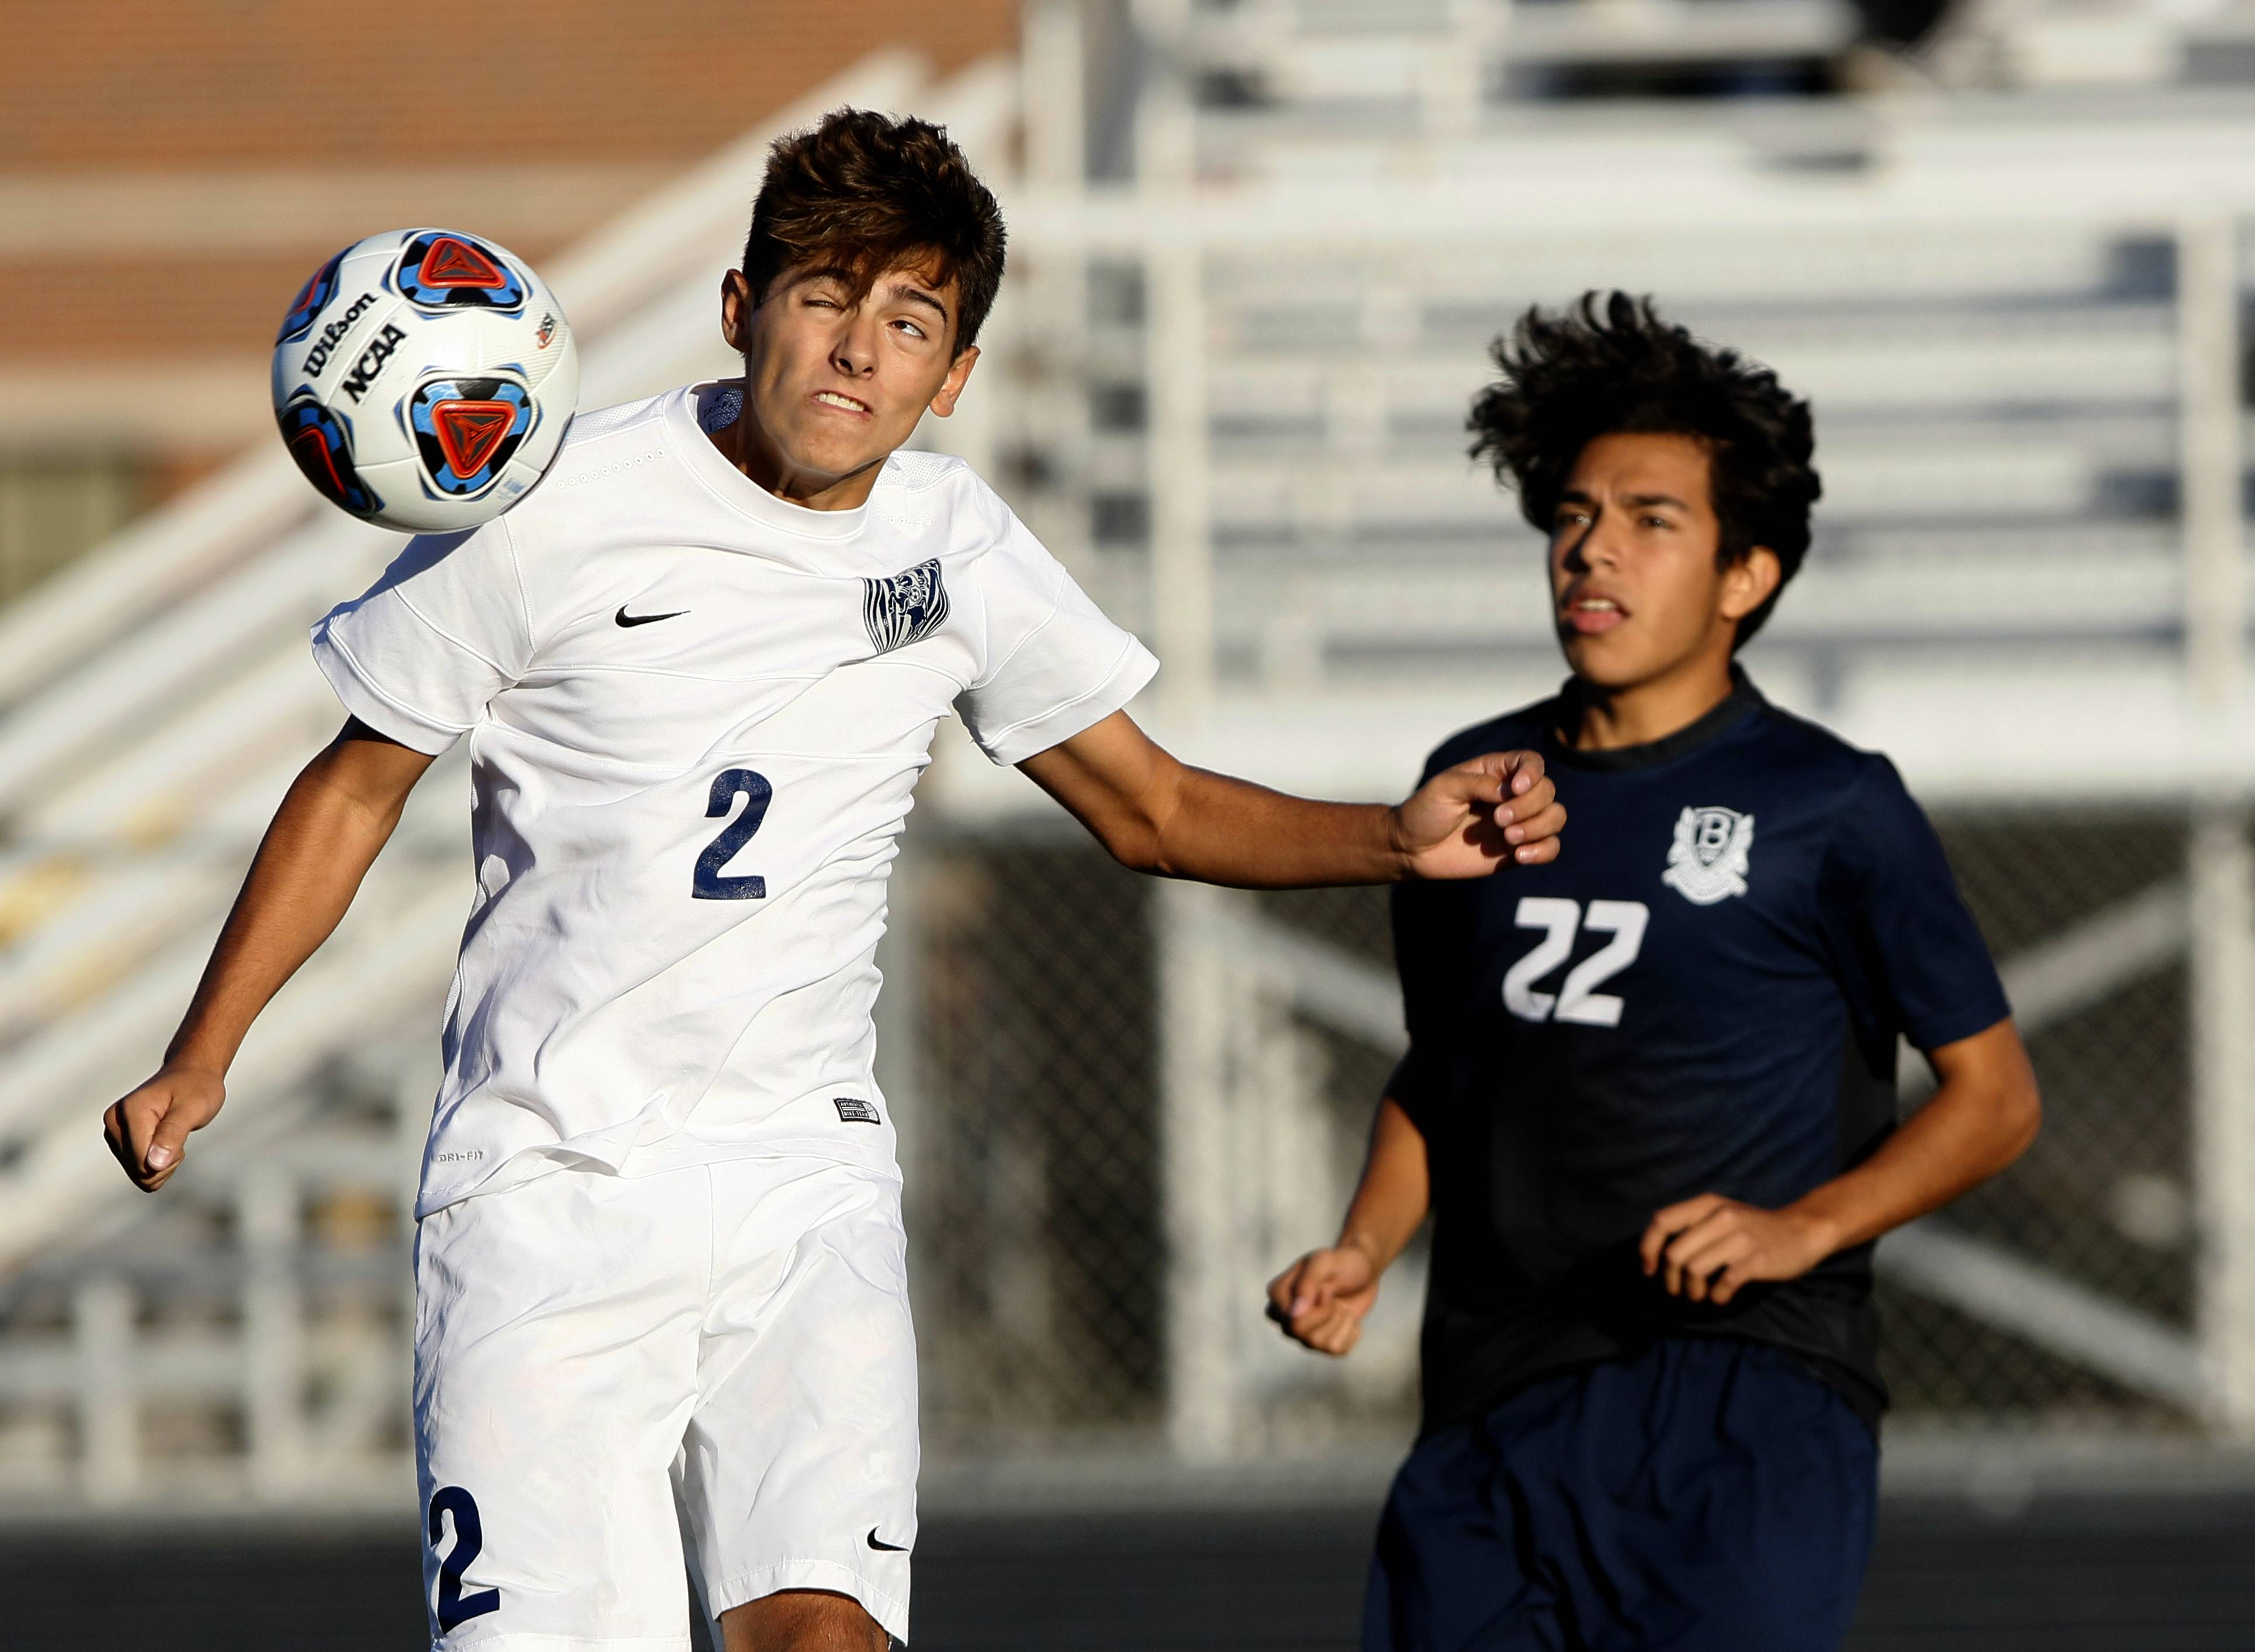 Lake Park's Gabriel Mendrano (2) battles for the ball with Bartlett's Sergio Navarrete (22) during the West Chicago boys soccer regional match.